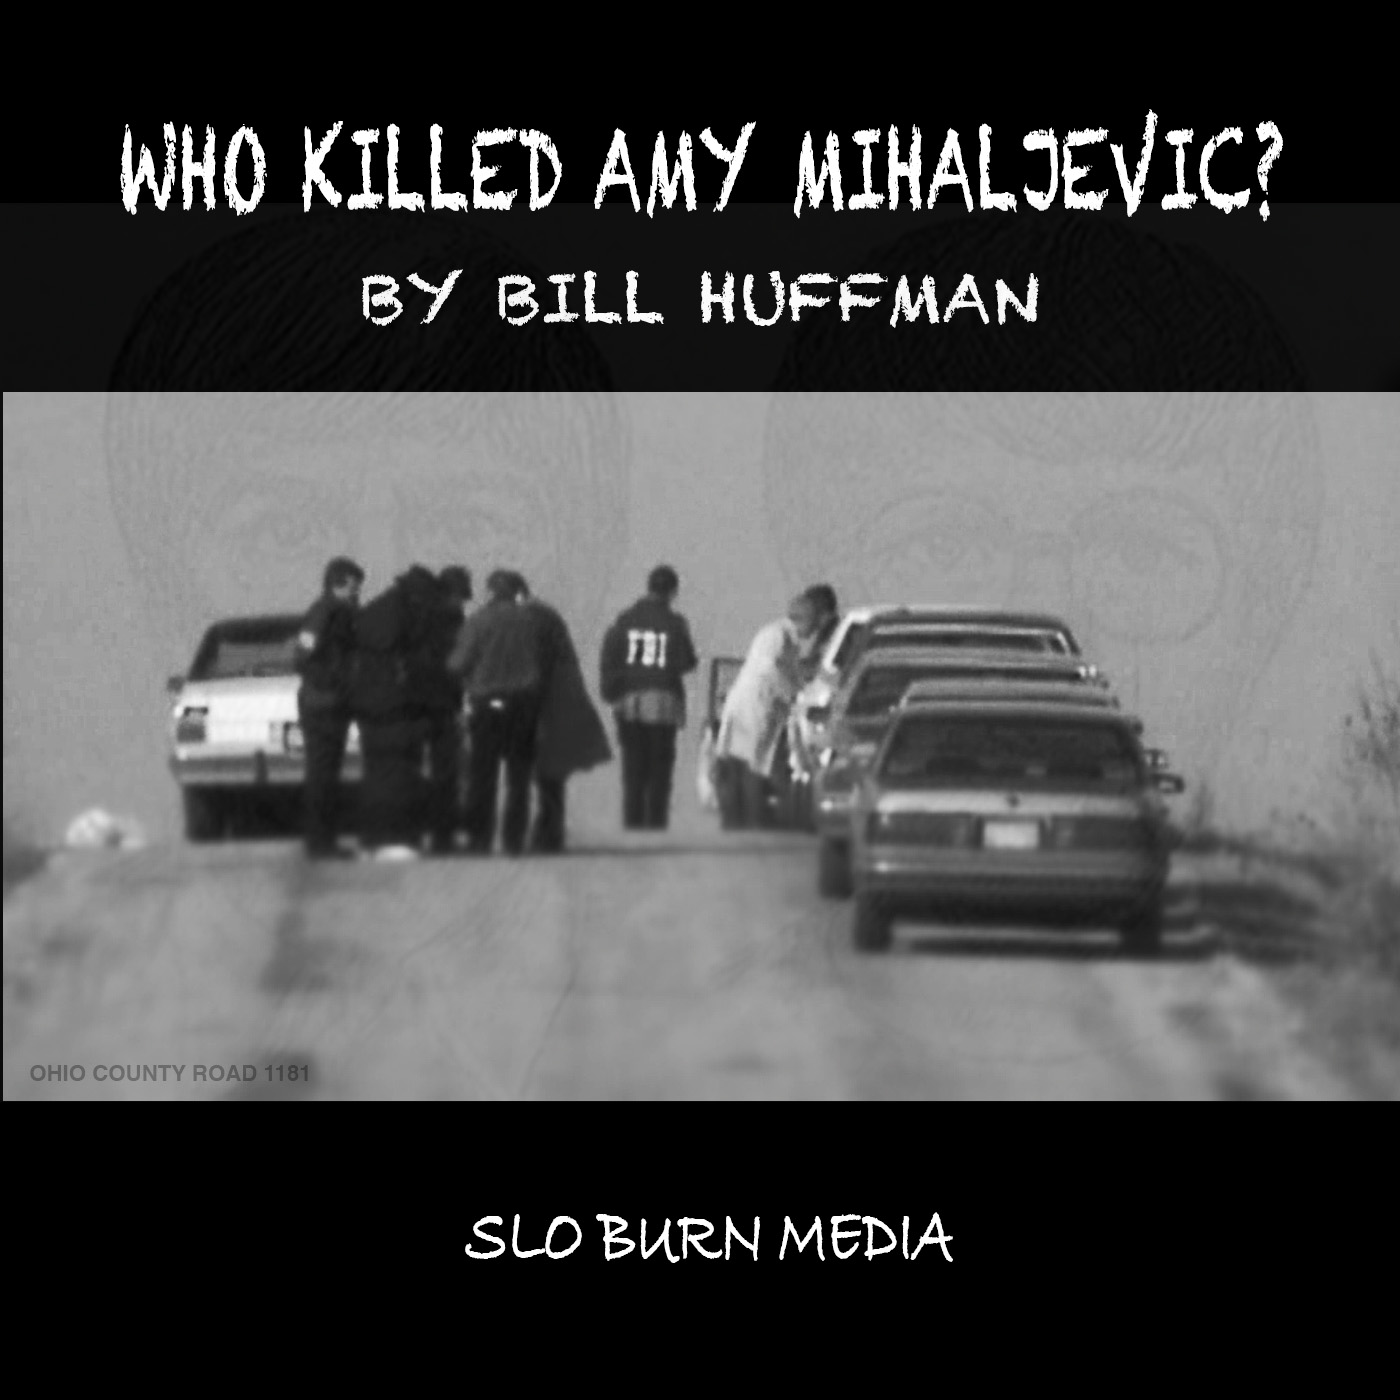 Who Killed Amy Mihaljevic?